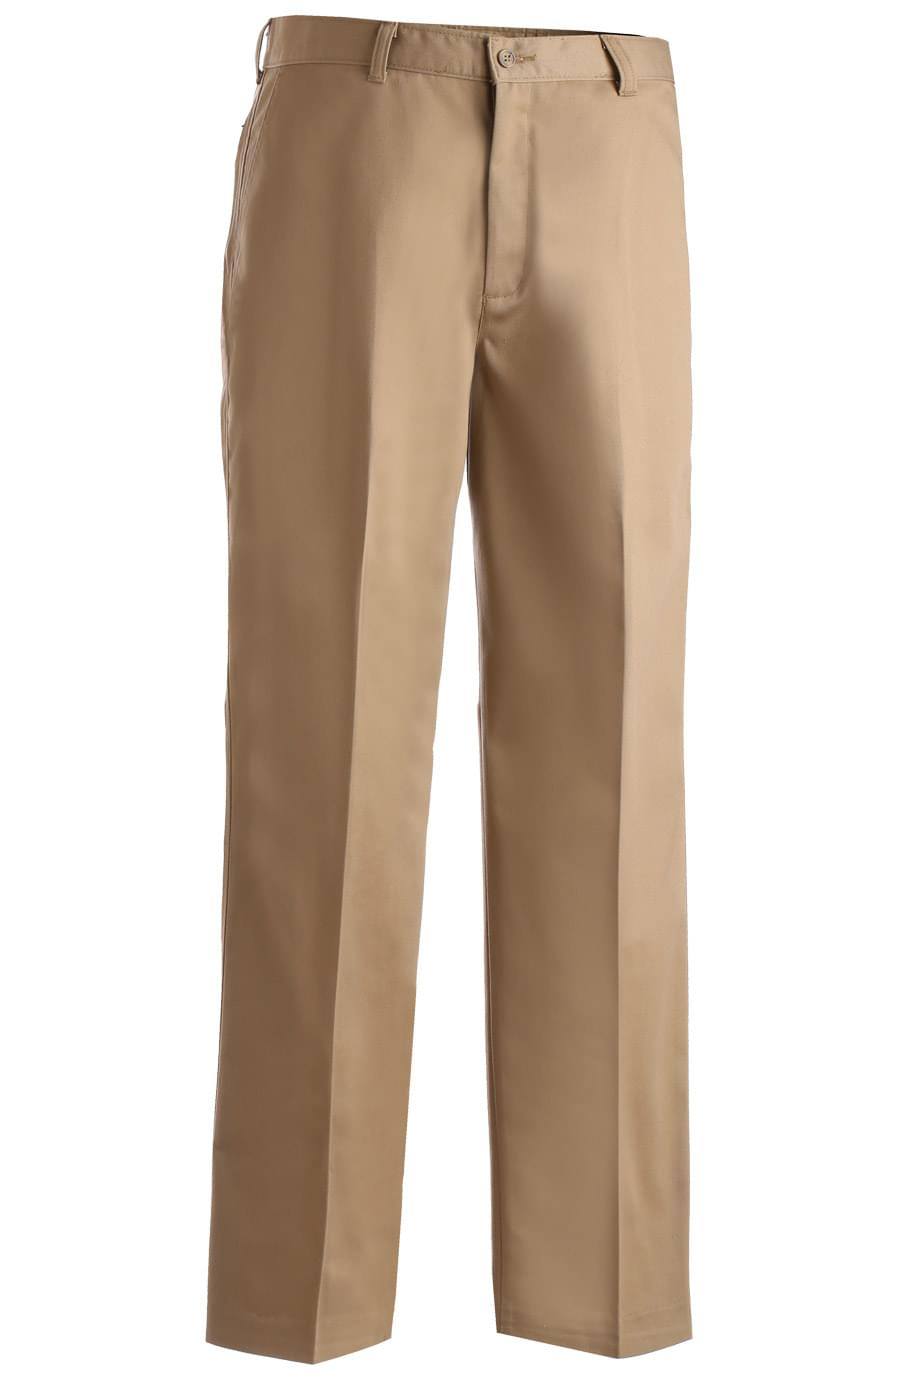 MEN'S UTILITY FLAT FRONT CHINO PANT